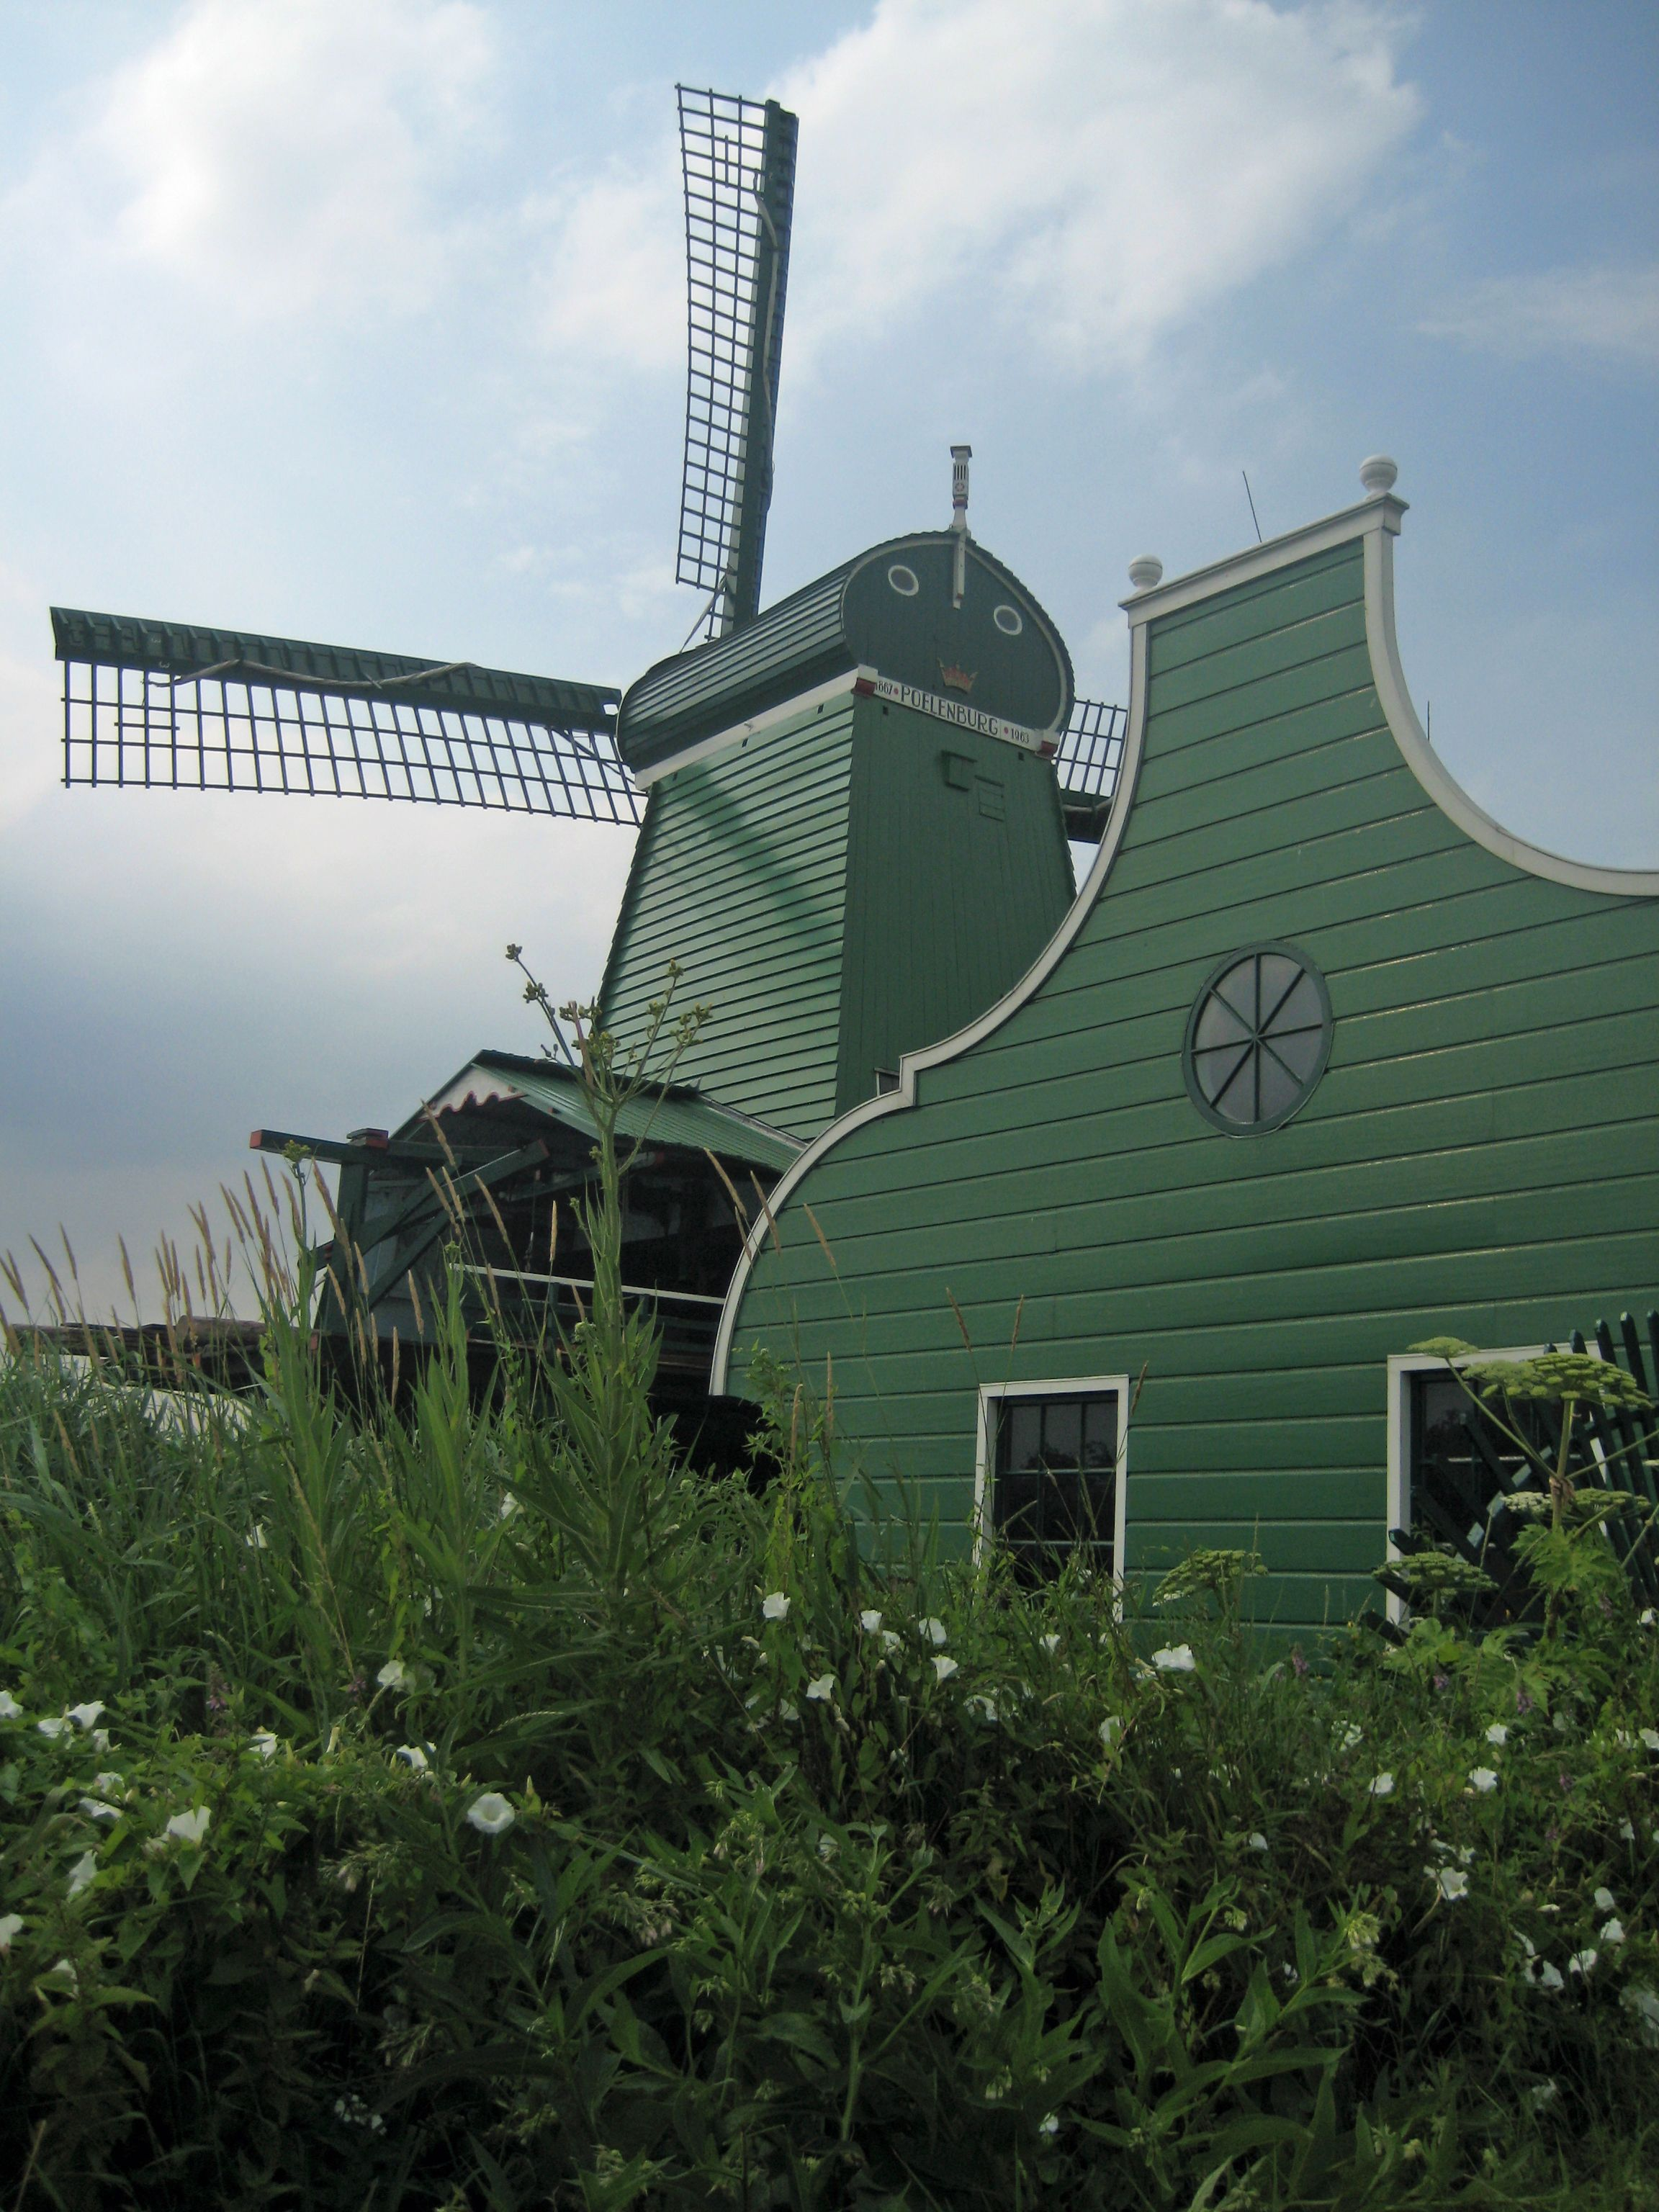 1000+ images about NL on Pinterest